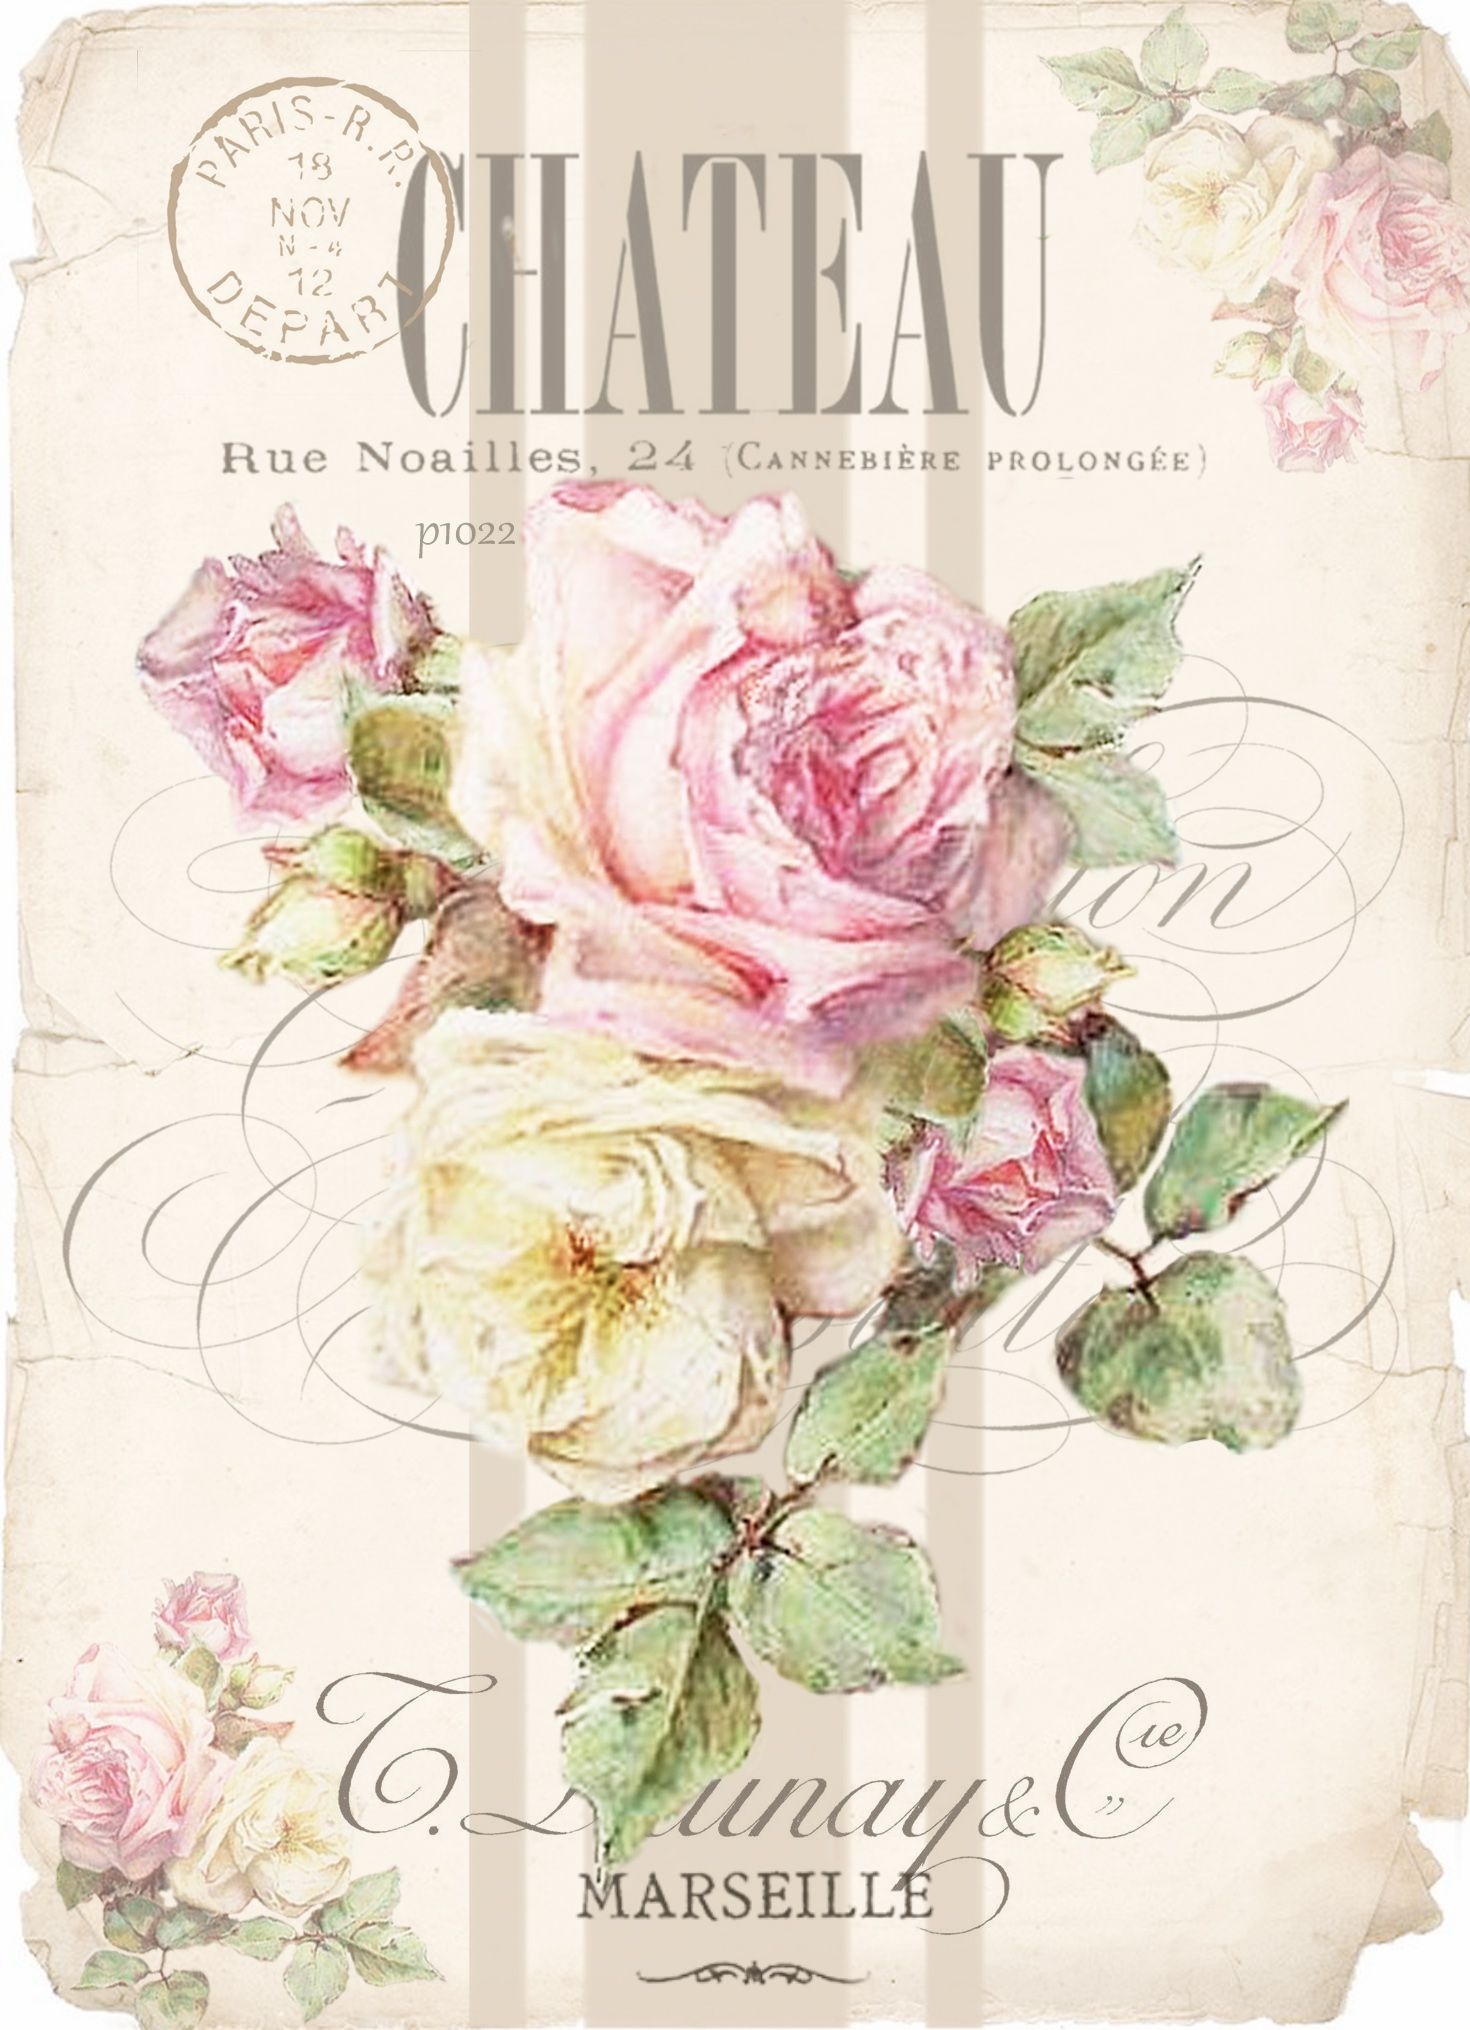 Chateau Vintage Roses Digital Collage Design P Free To Use